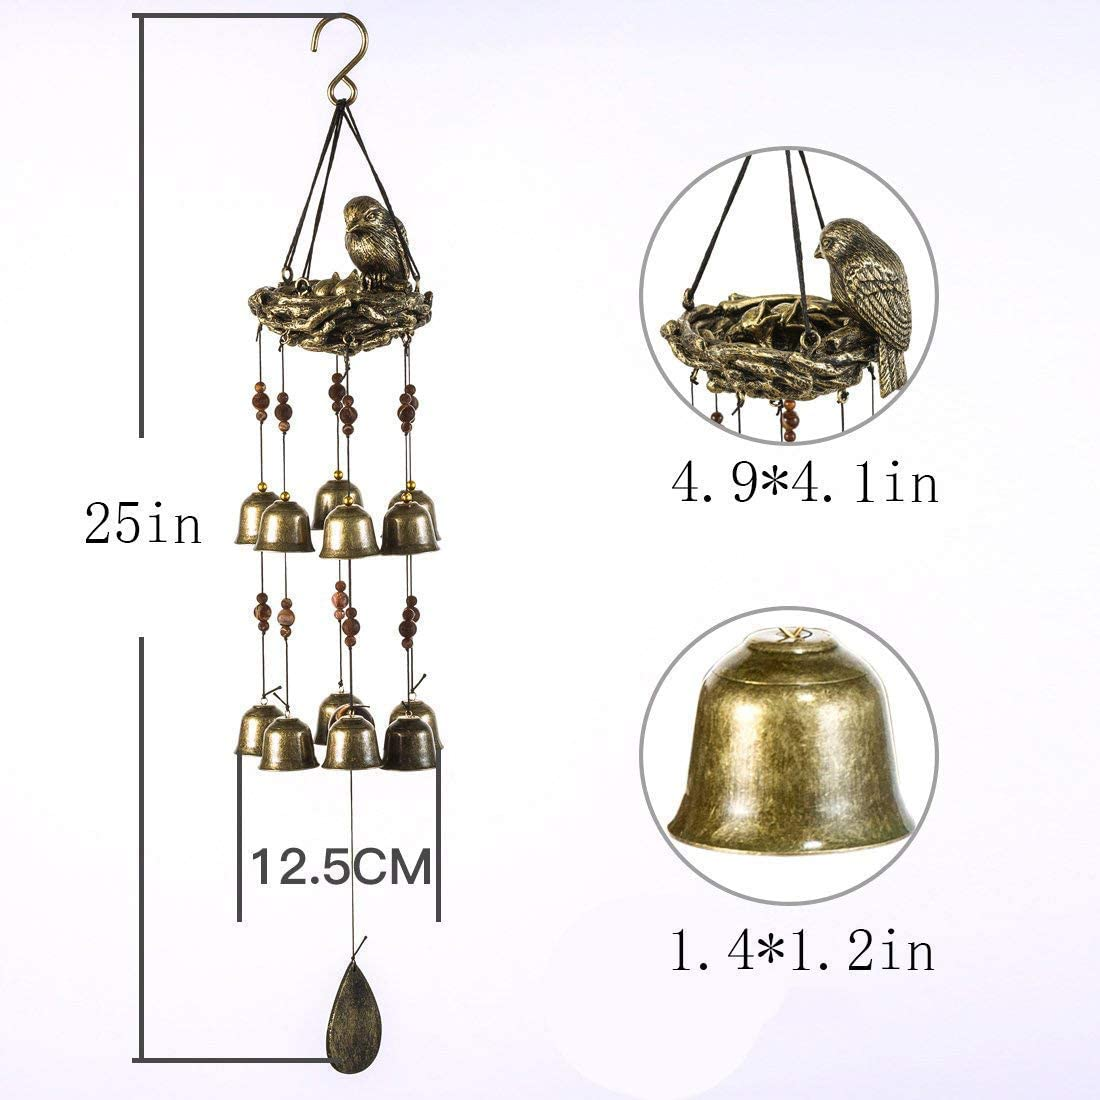 Wind Chimes That Can Highlight the Glory of Mother-a Gift of Love